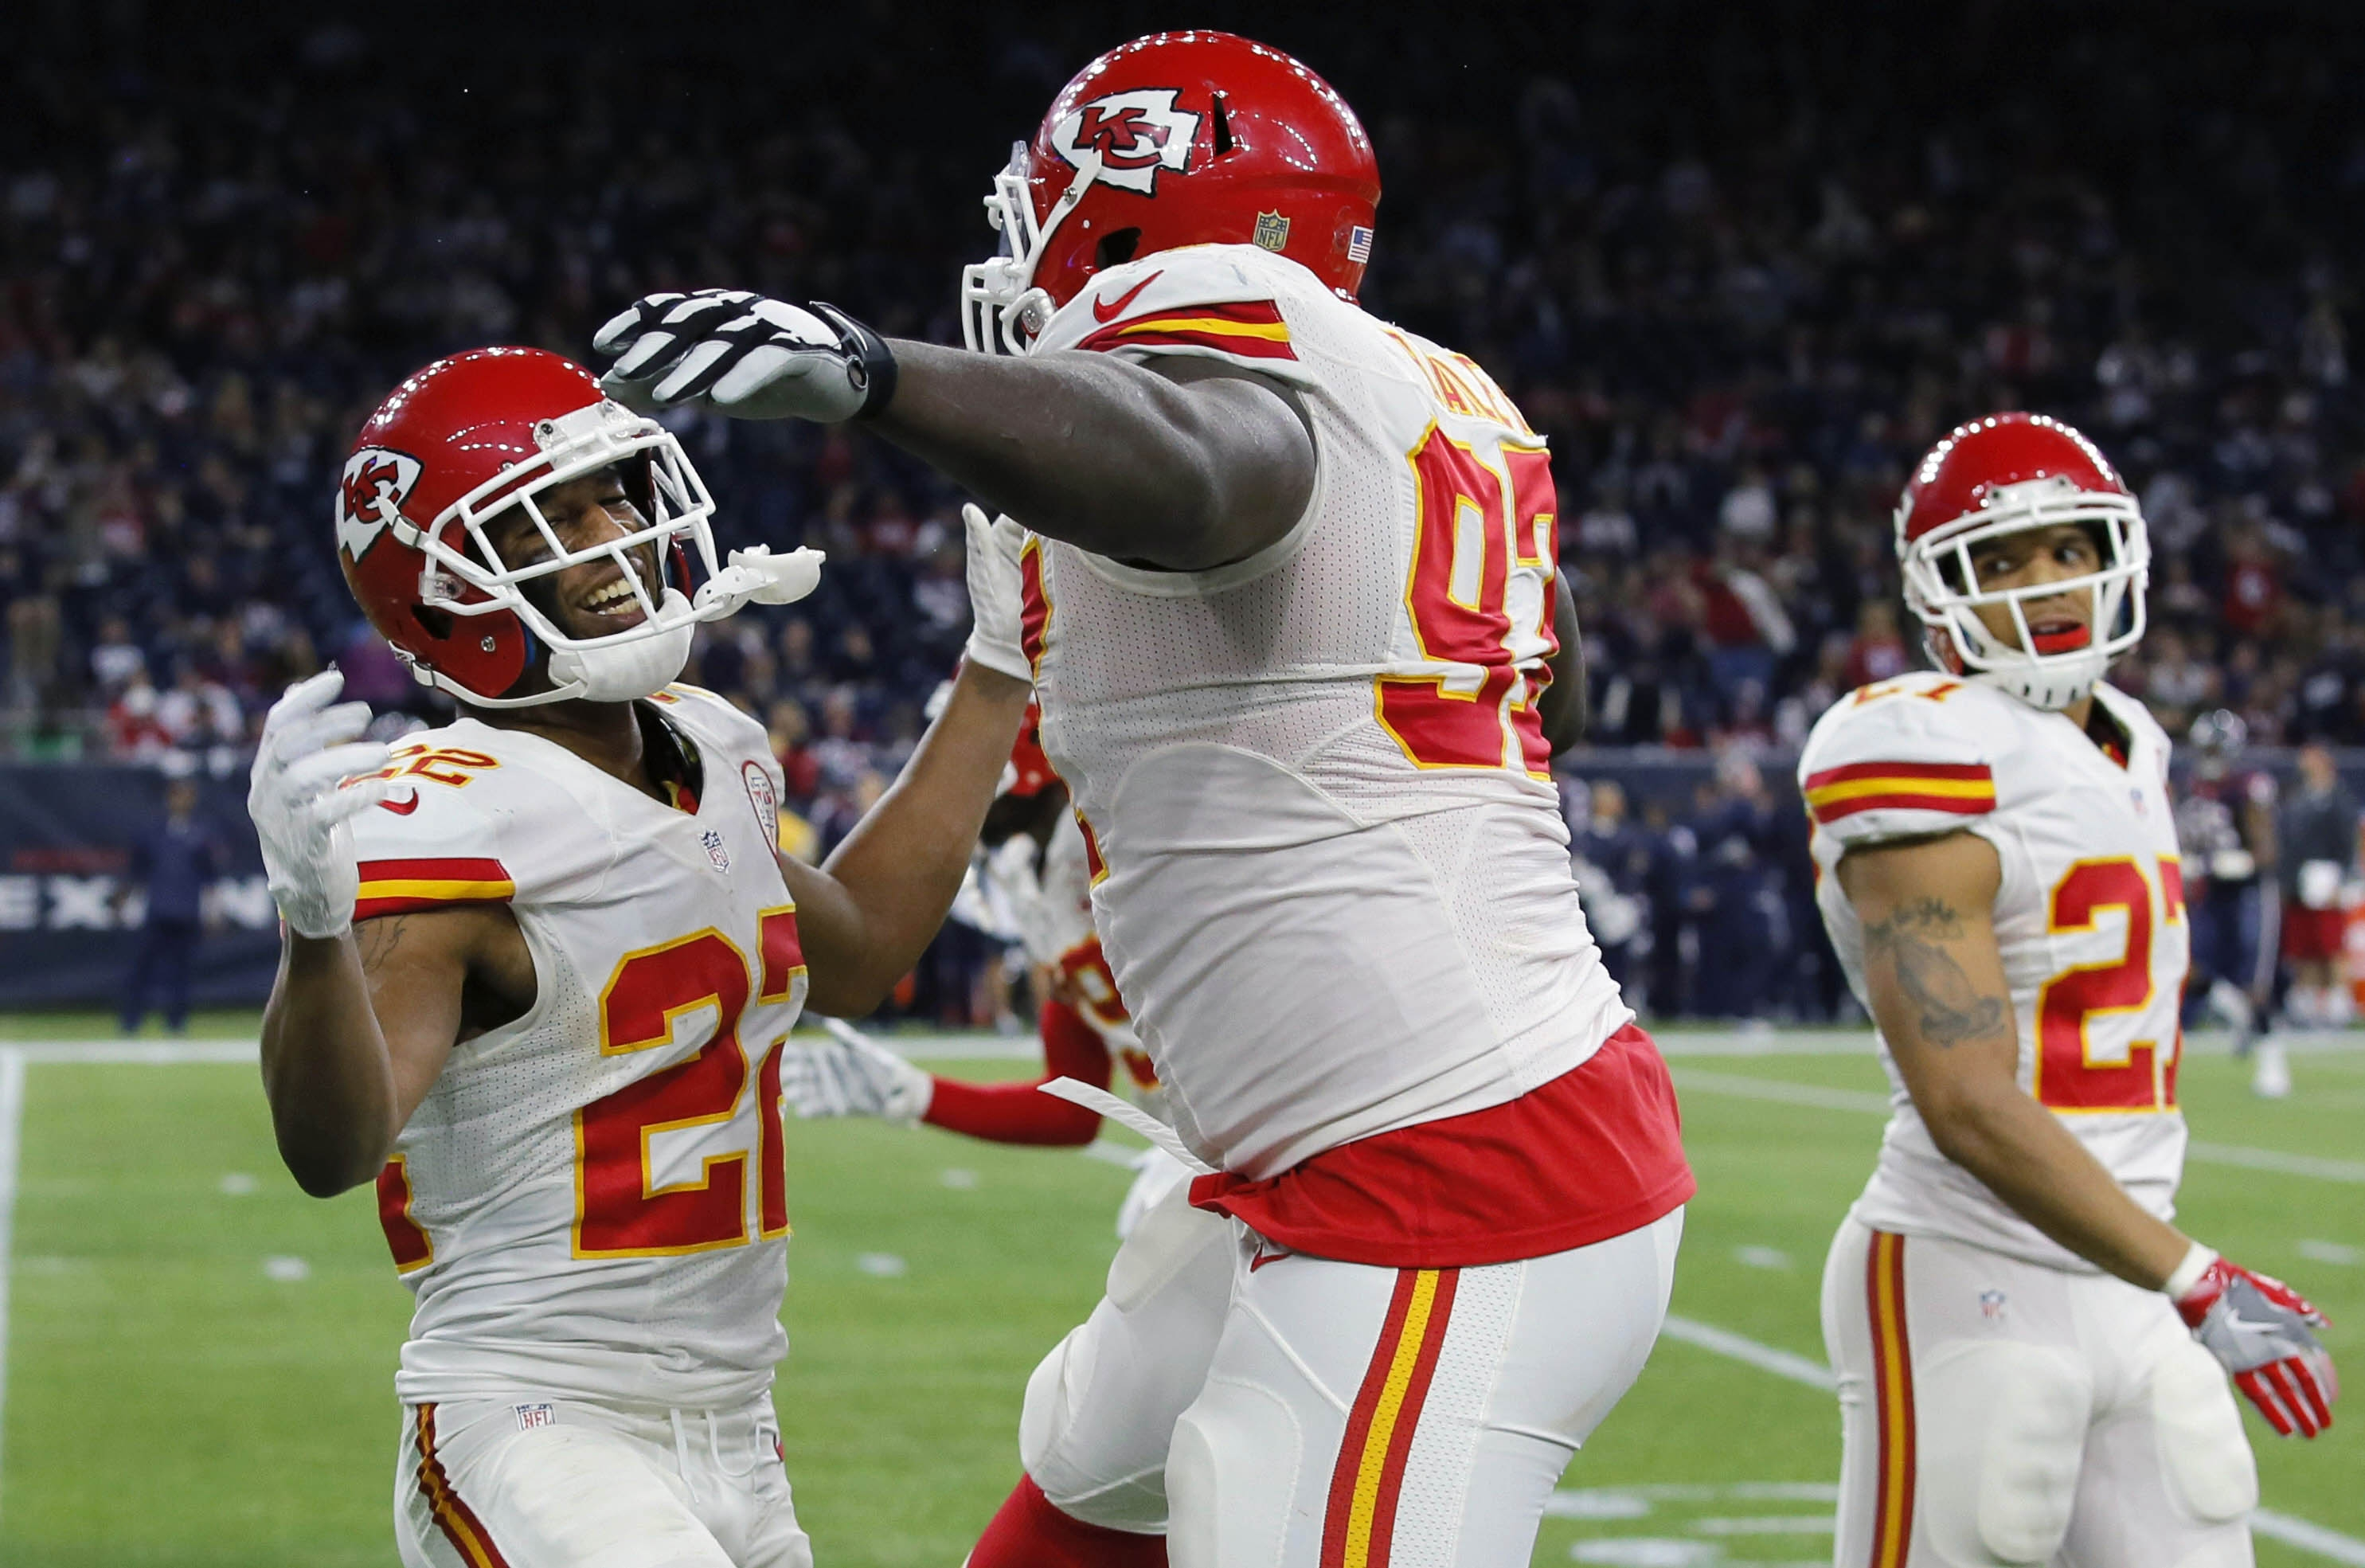 Kansas City Chiefs defensive back Tyvon Branch (27) and defensive end Allen Bailey (97) celebrate against the Houston Texans during the second half of an NFL wild-card playoff football game Saturday, Jan. 9, 2016, in Houston. (AP Photo/Tony Gutierrez)